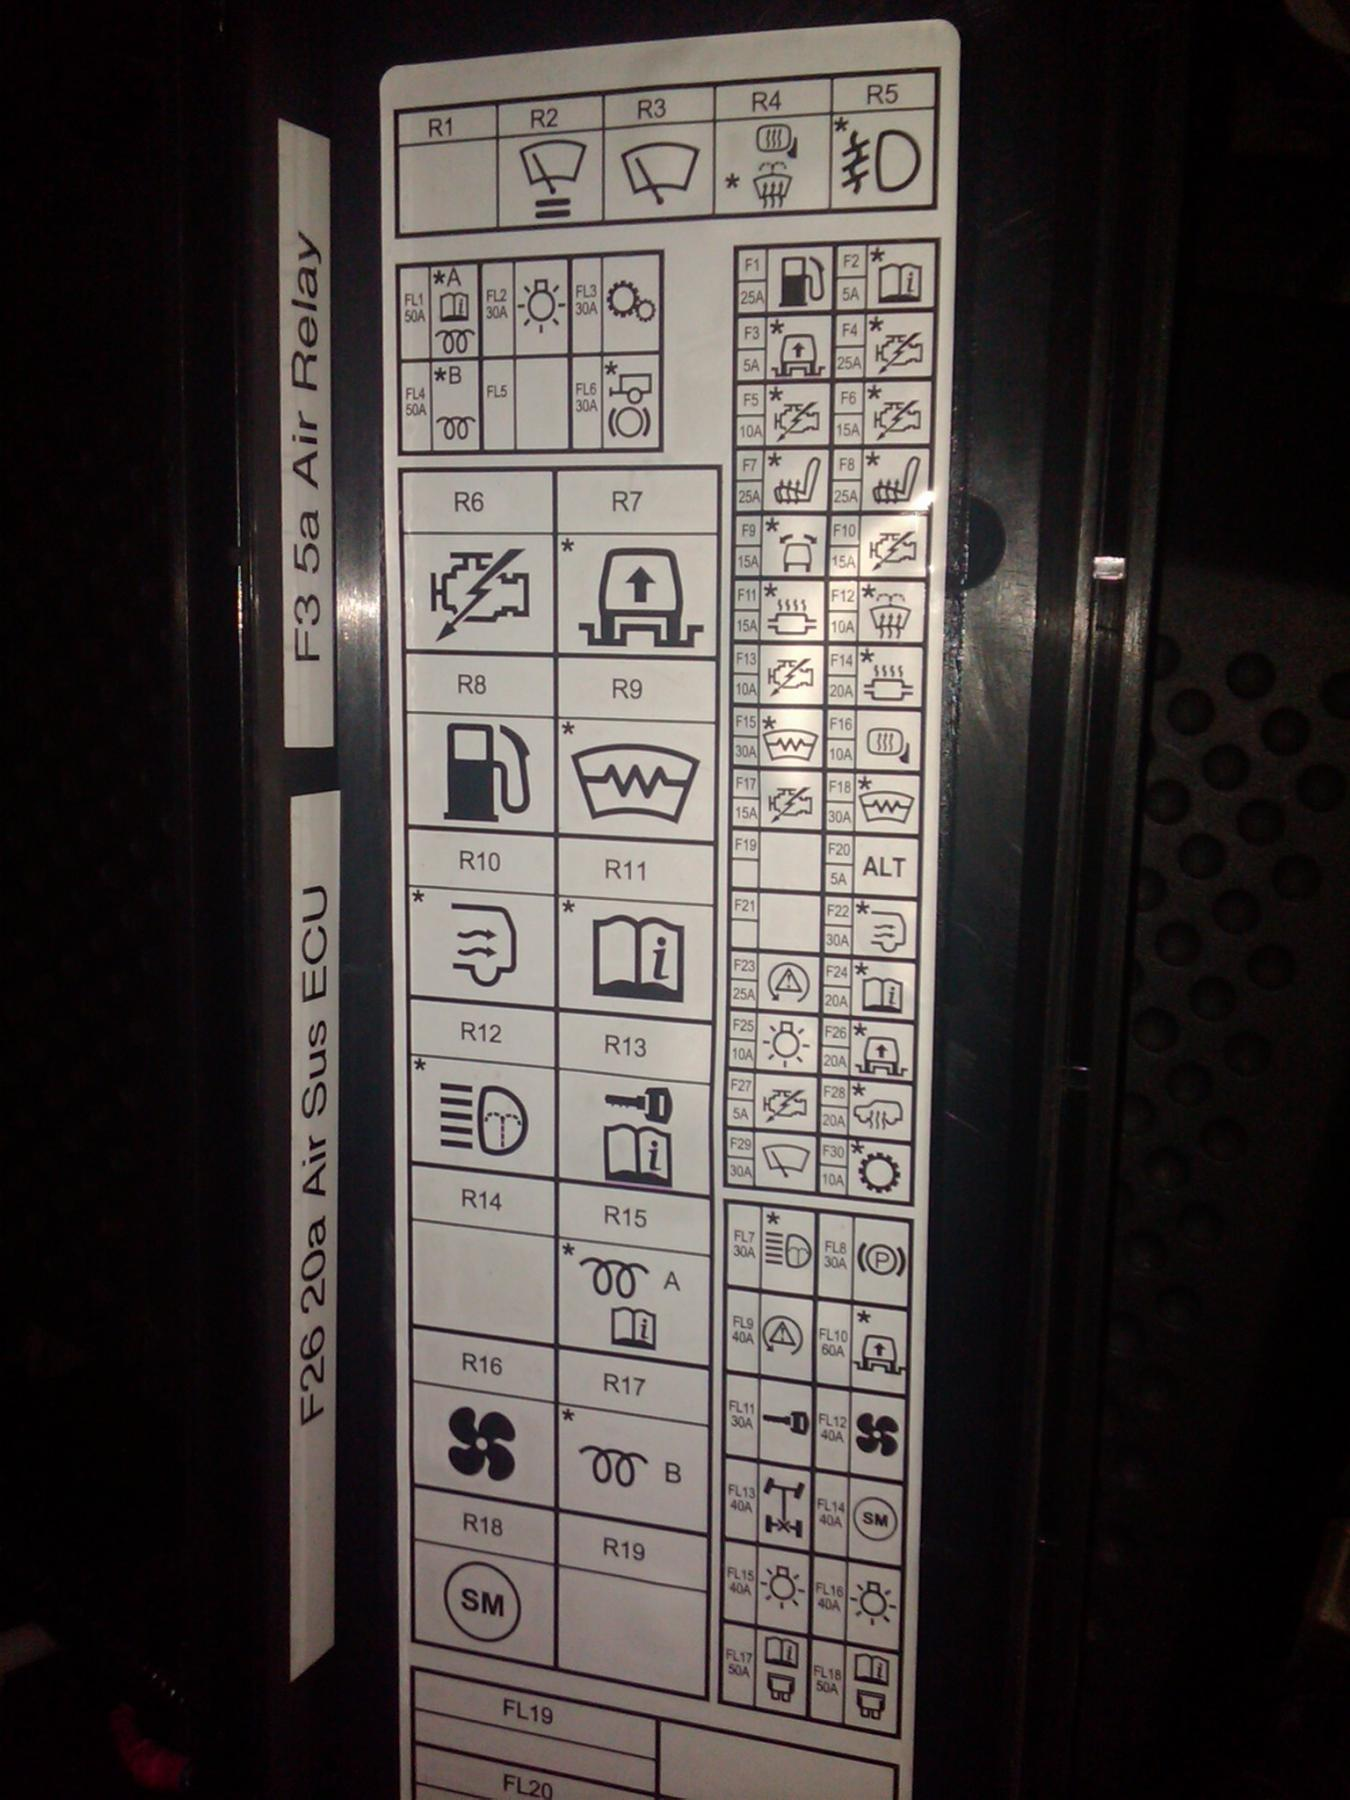 2005 Range Rover Hse Fuse Box Diagram Lee Heated Seat Lr3 Question Land Rover Forums Land